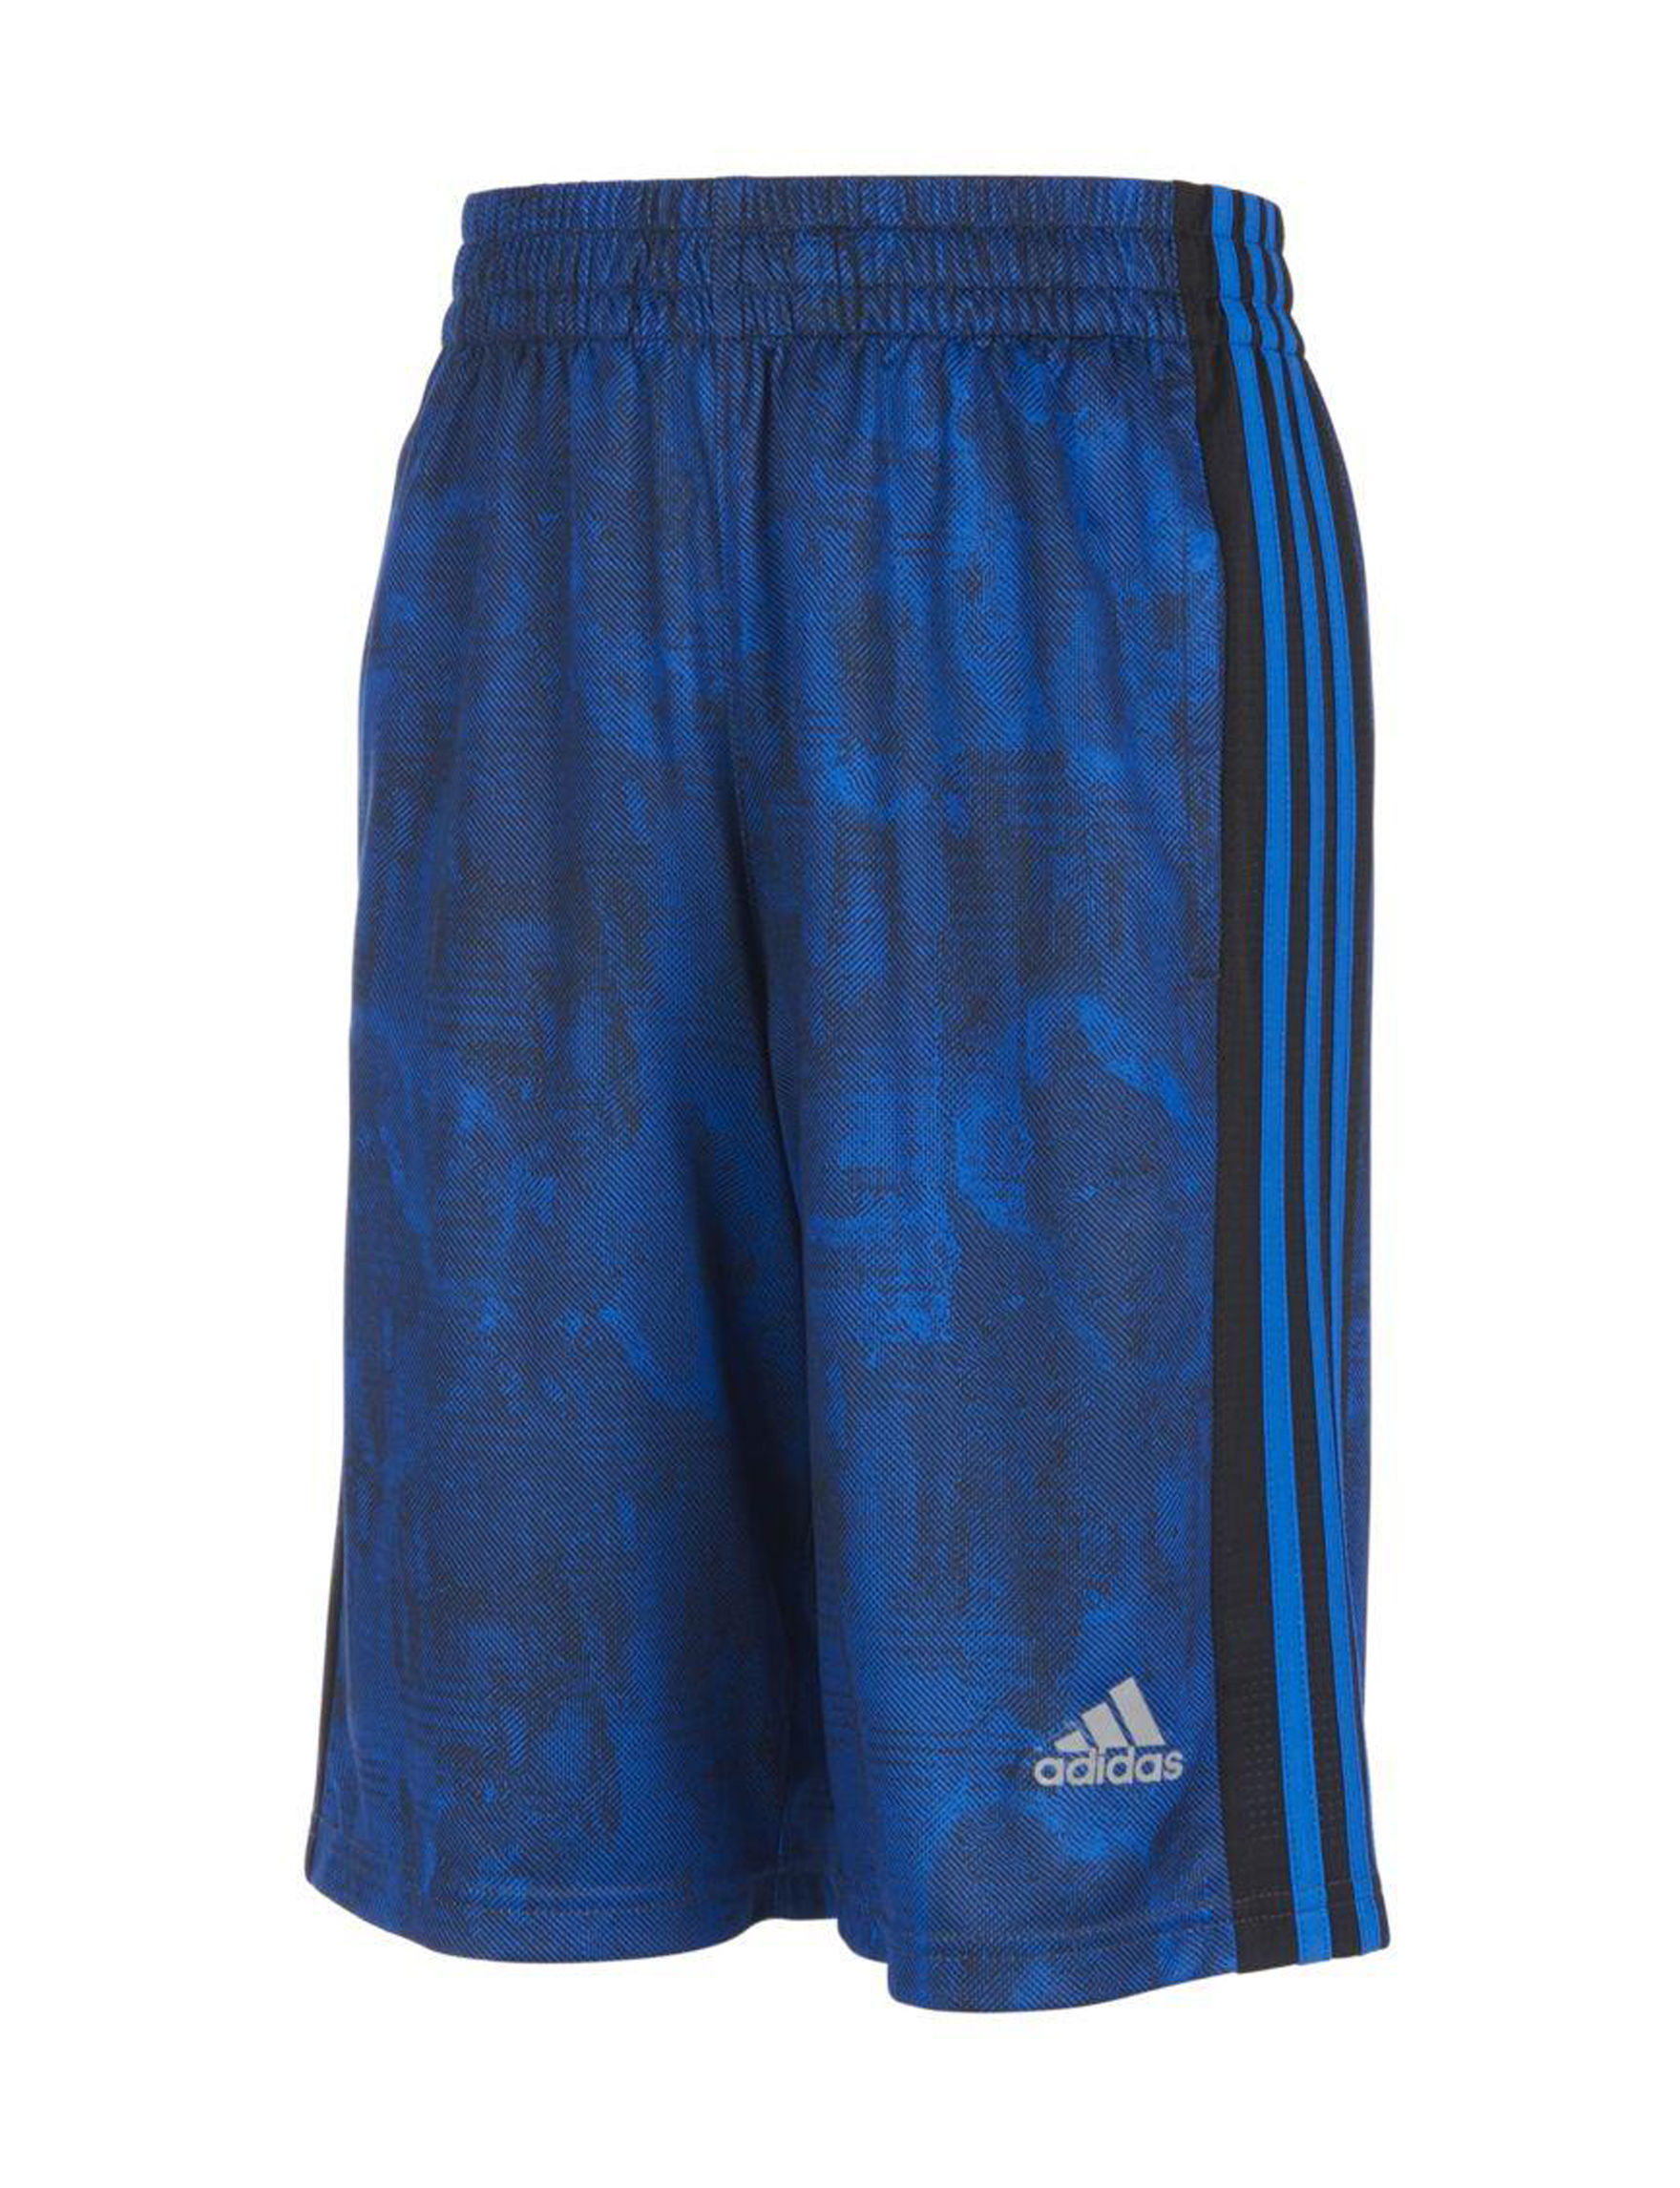 Adidas Blue / Black Relaxed